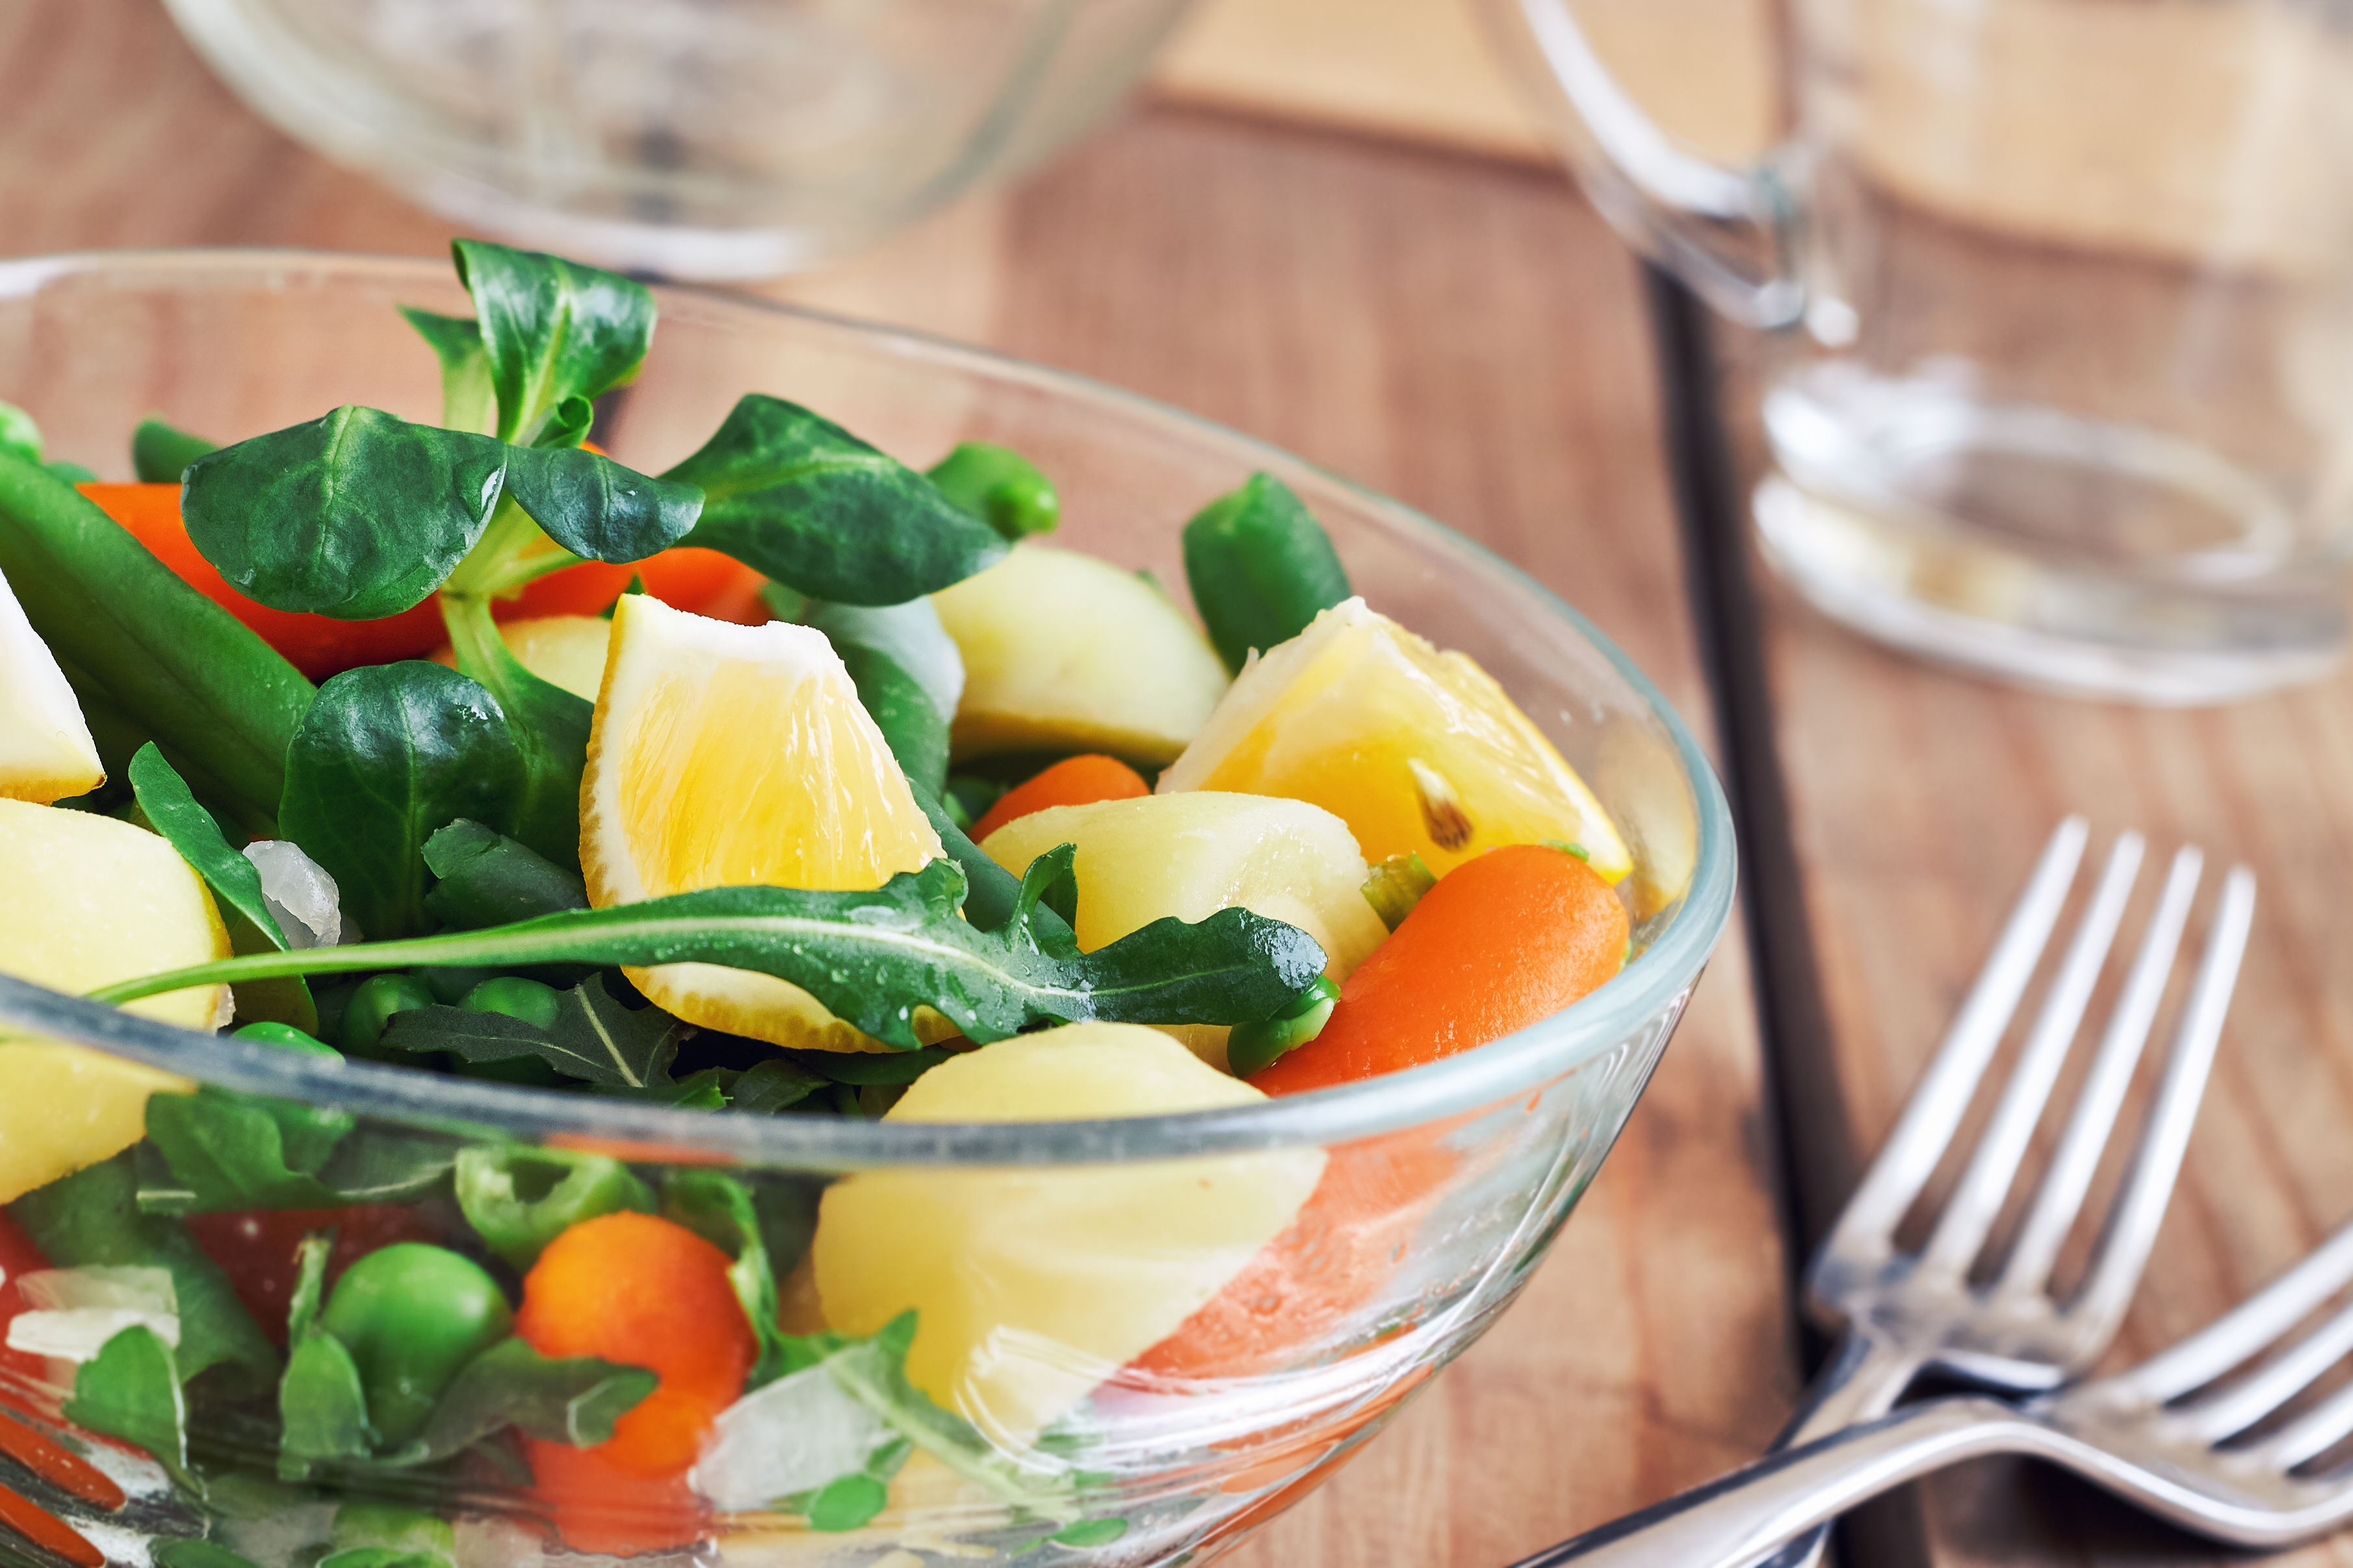 Salad with baby carrots, peas, onions and potatoes in glass bowl on wooden background